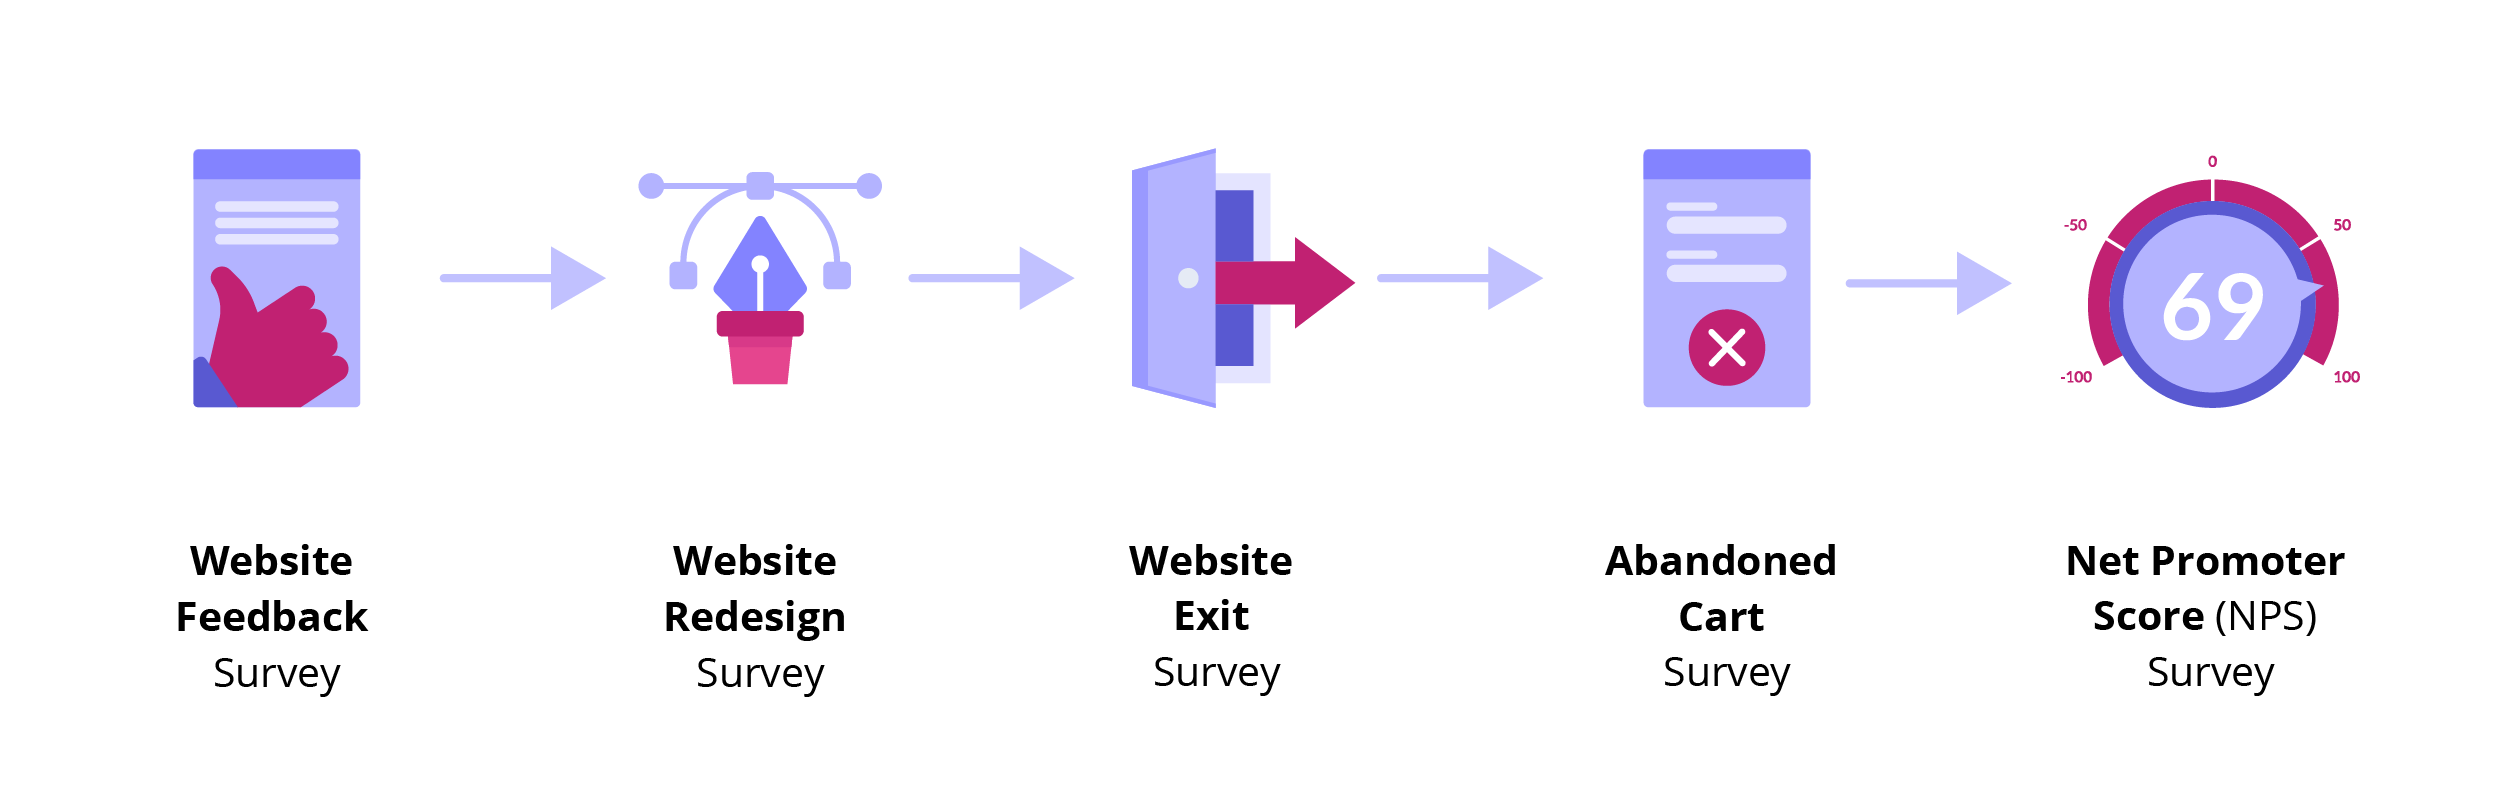 types of campaigns you can run using website surveys